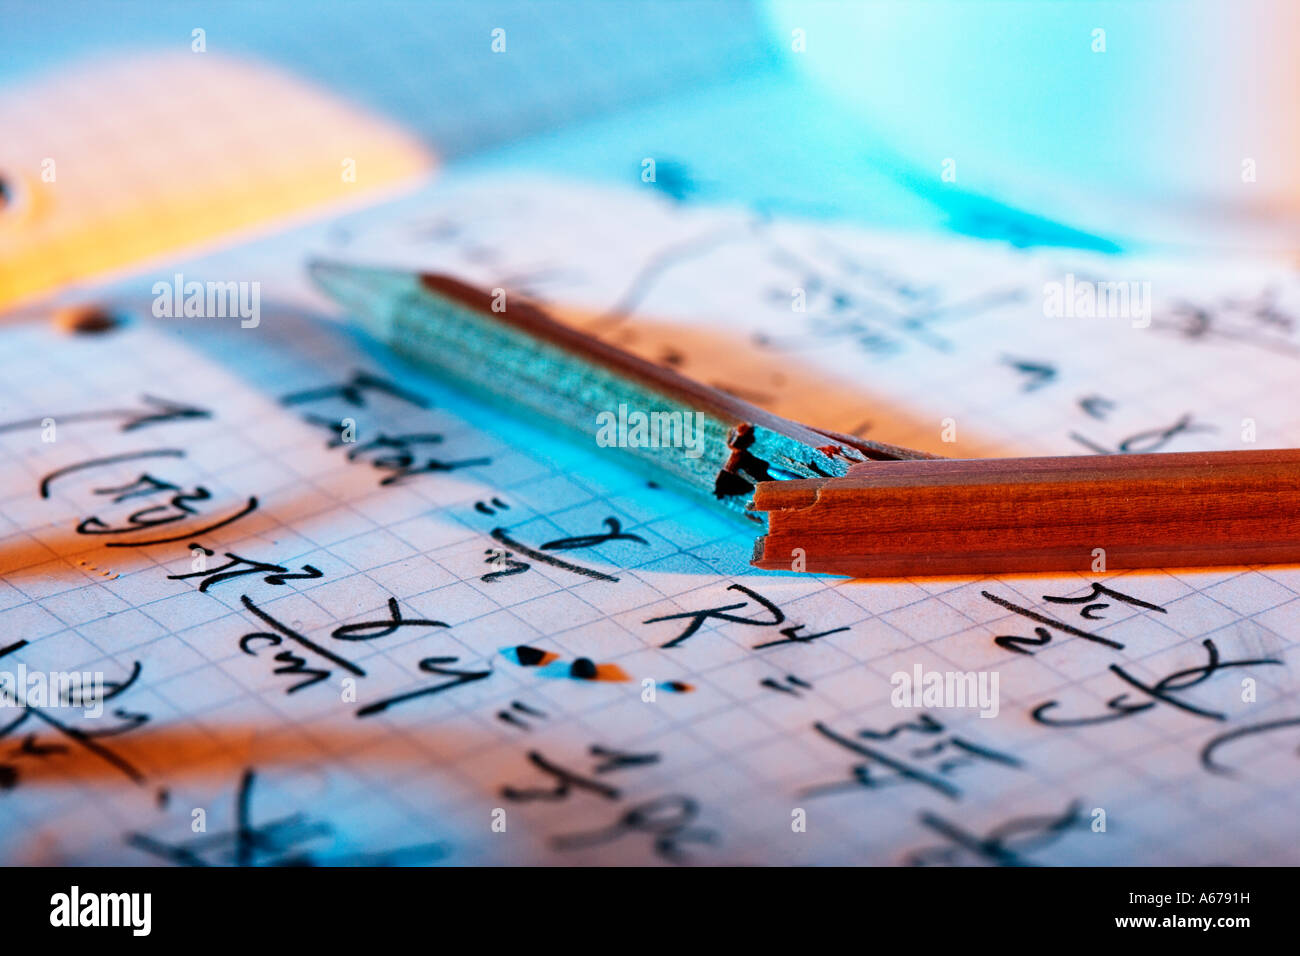 Page of mathematical equations with shadow of eye-glasses and broken pencil. - Stock Image